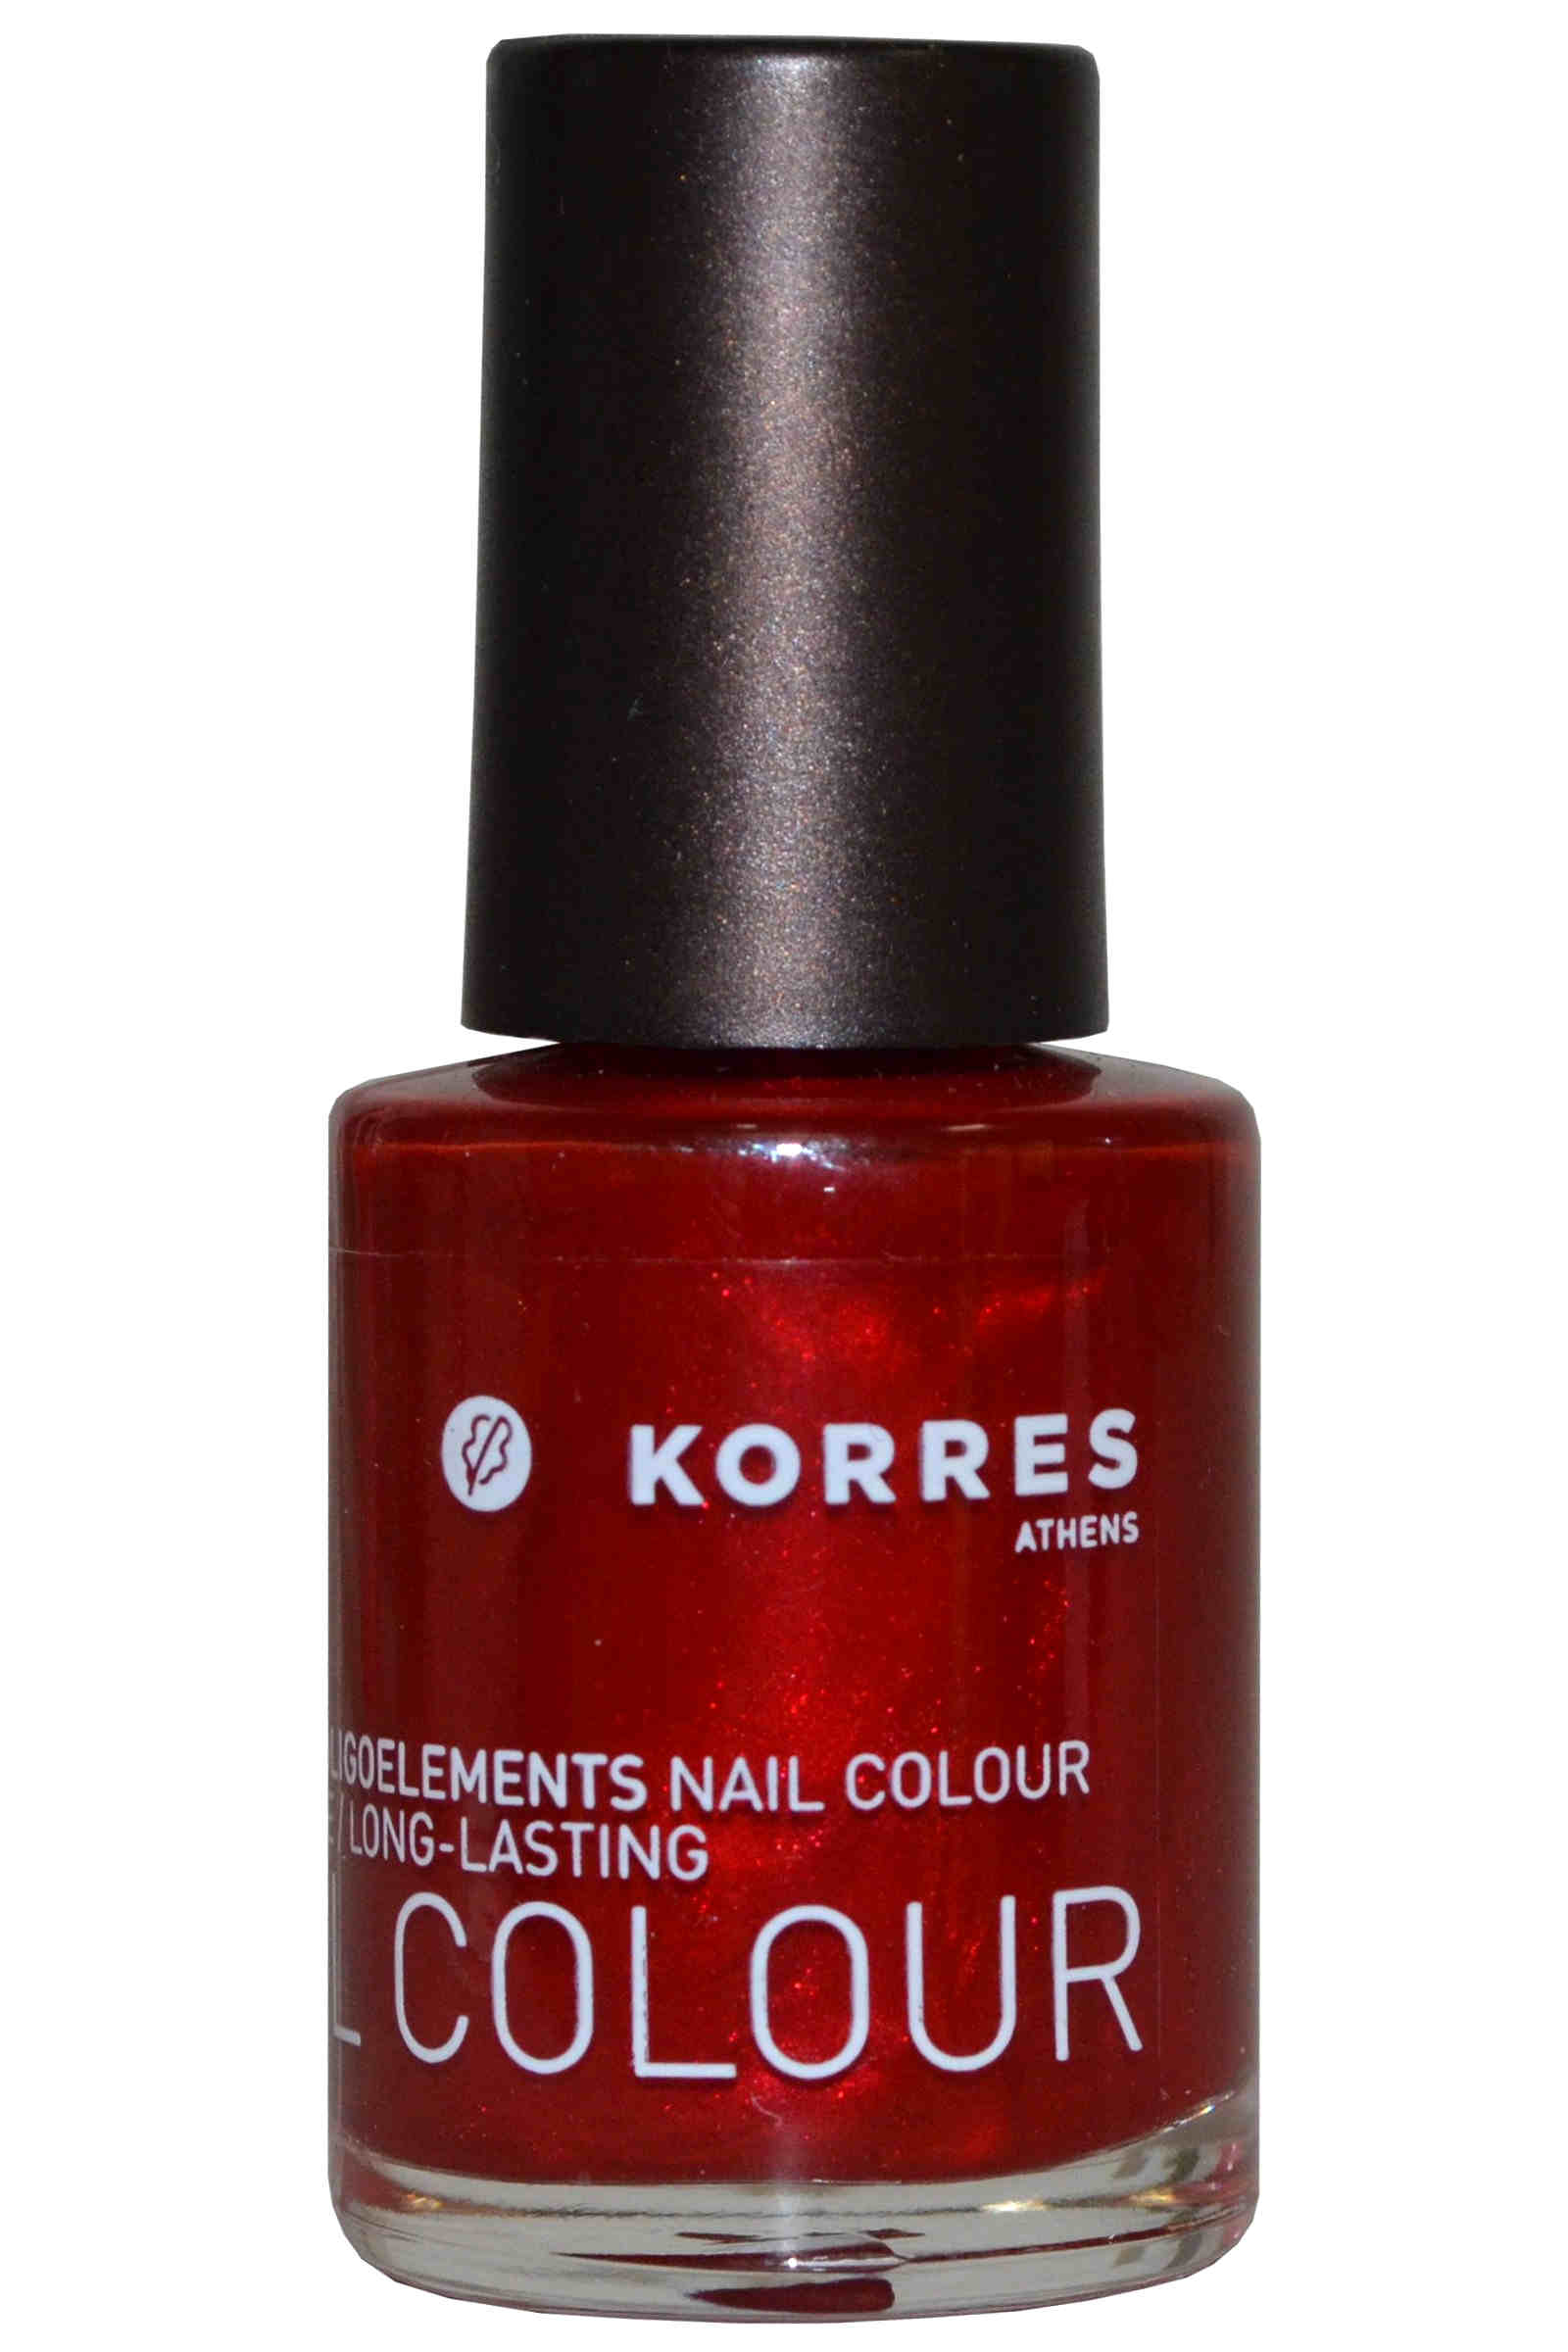 Korres Nail Color High Shine Long Lasting 10ml Metallic Red (#56) [Free From 7]